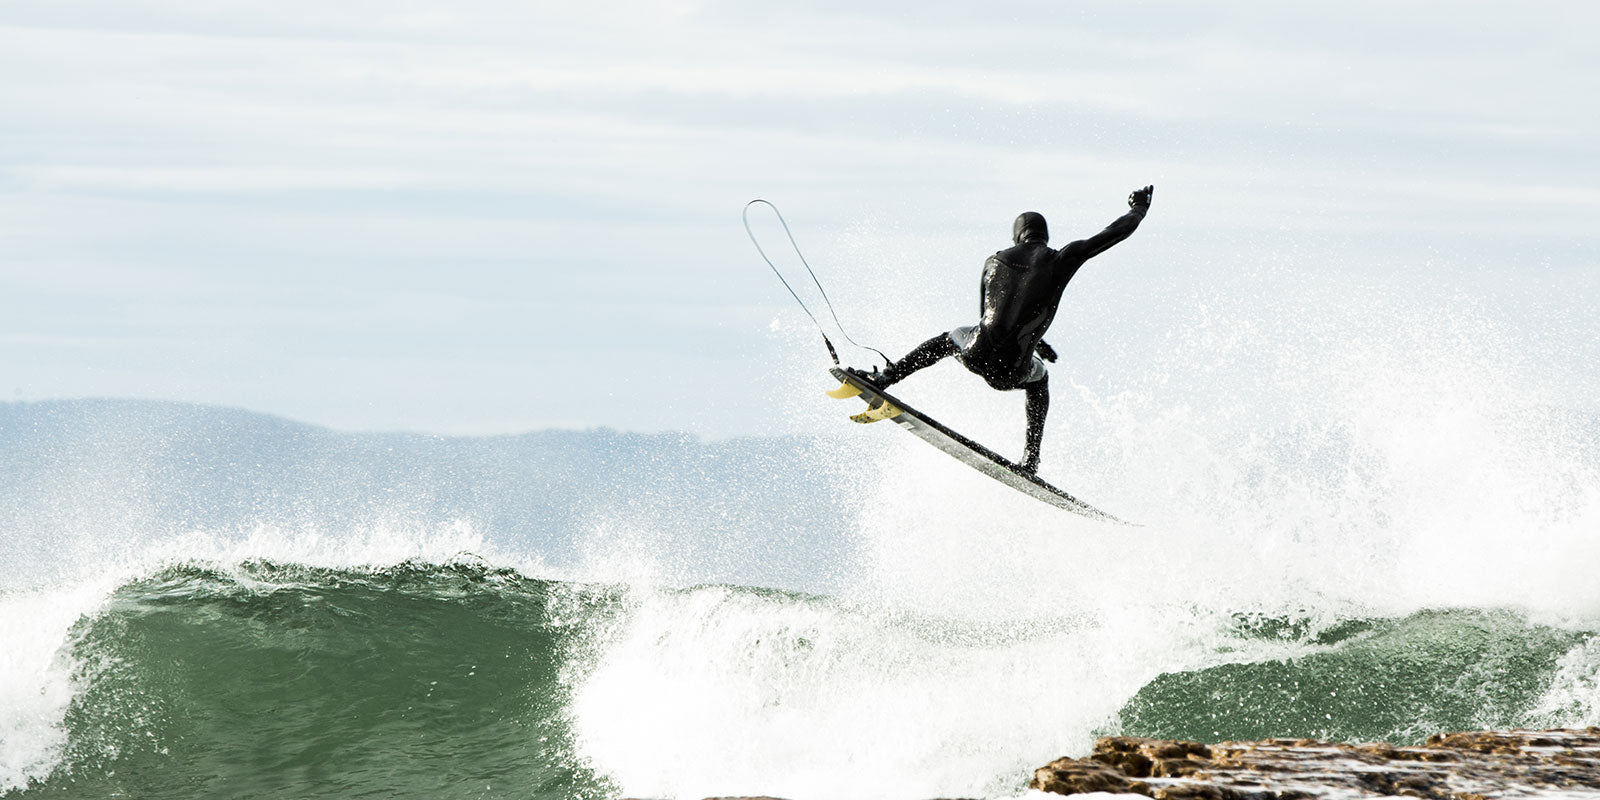 Slyde Handboards Talks Surf Gear & More With Adelio Wetsuits Founder Brett Vergou